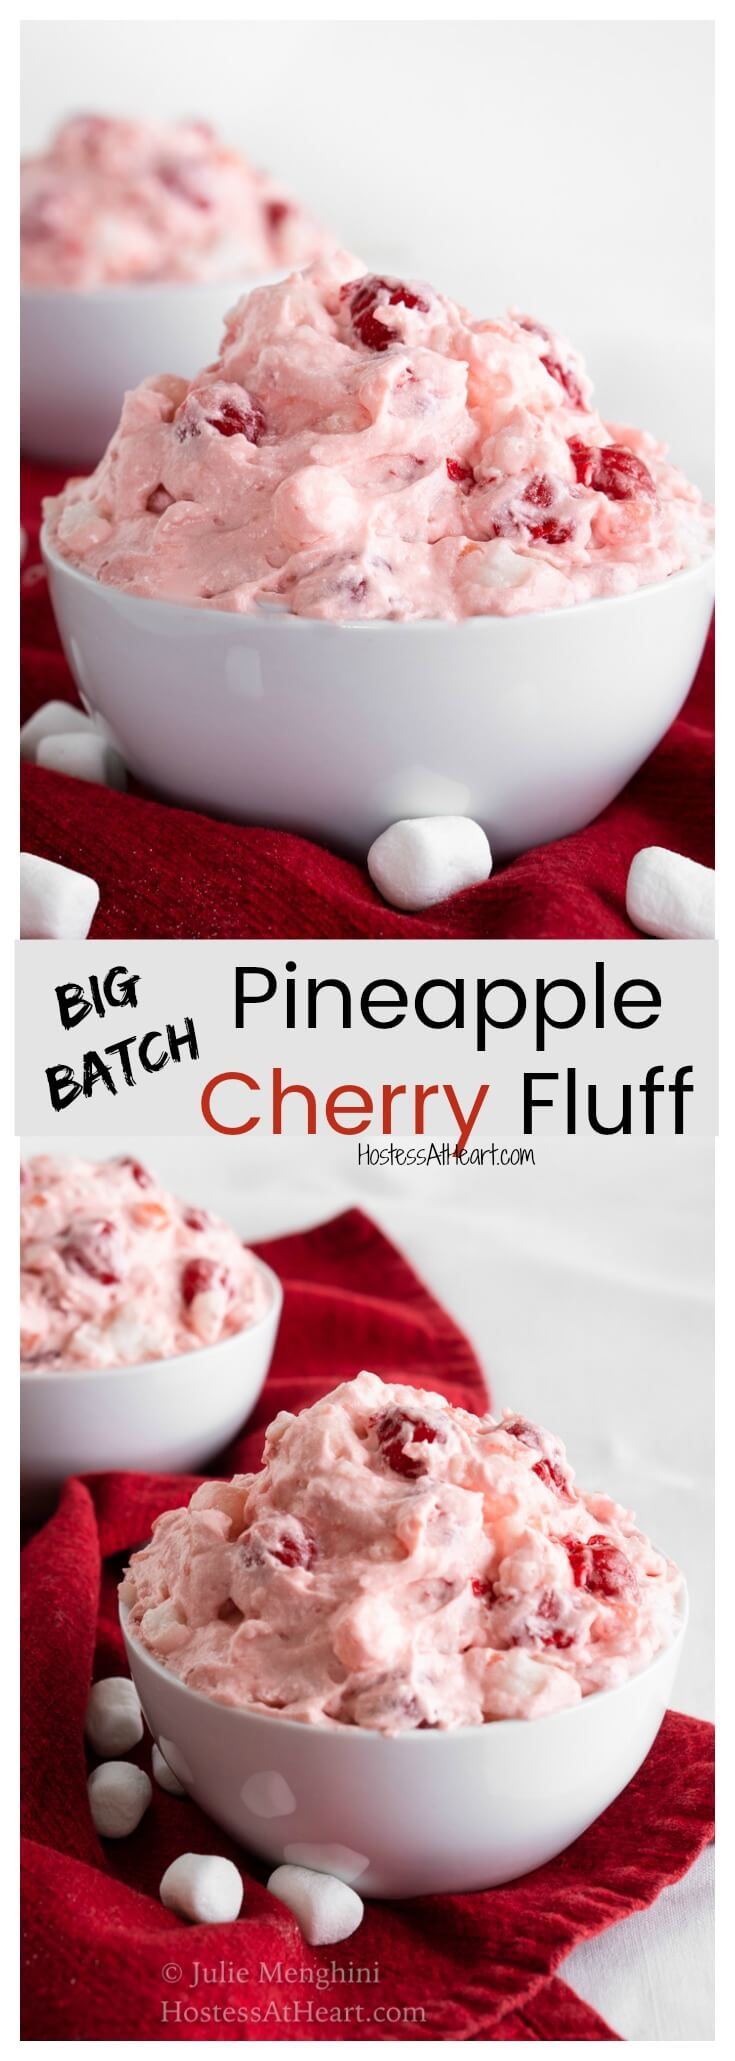 Big Batch Pineapple Cherry Fluff is simple enough to make for any occasion but pretty enough to dress up for a special occasion.